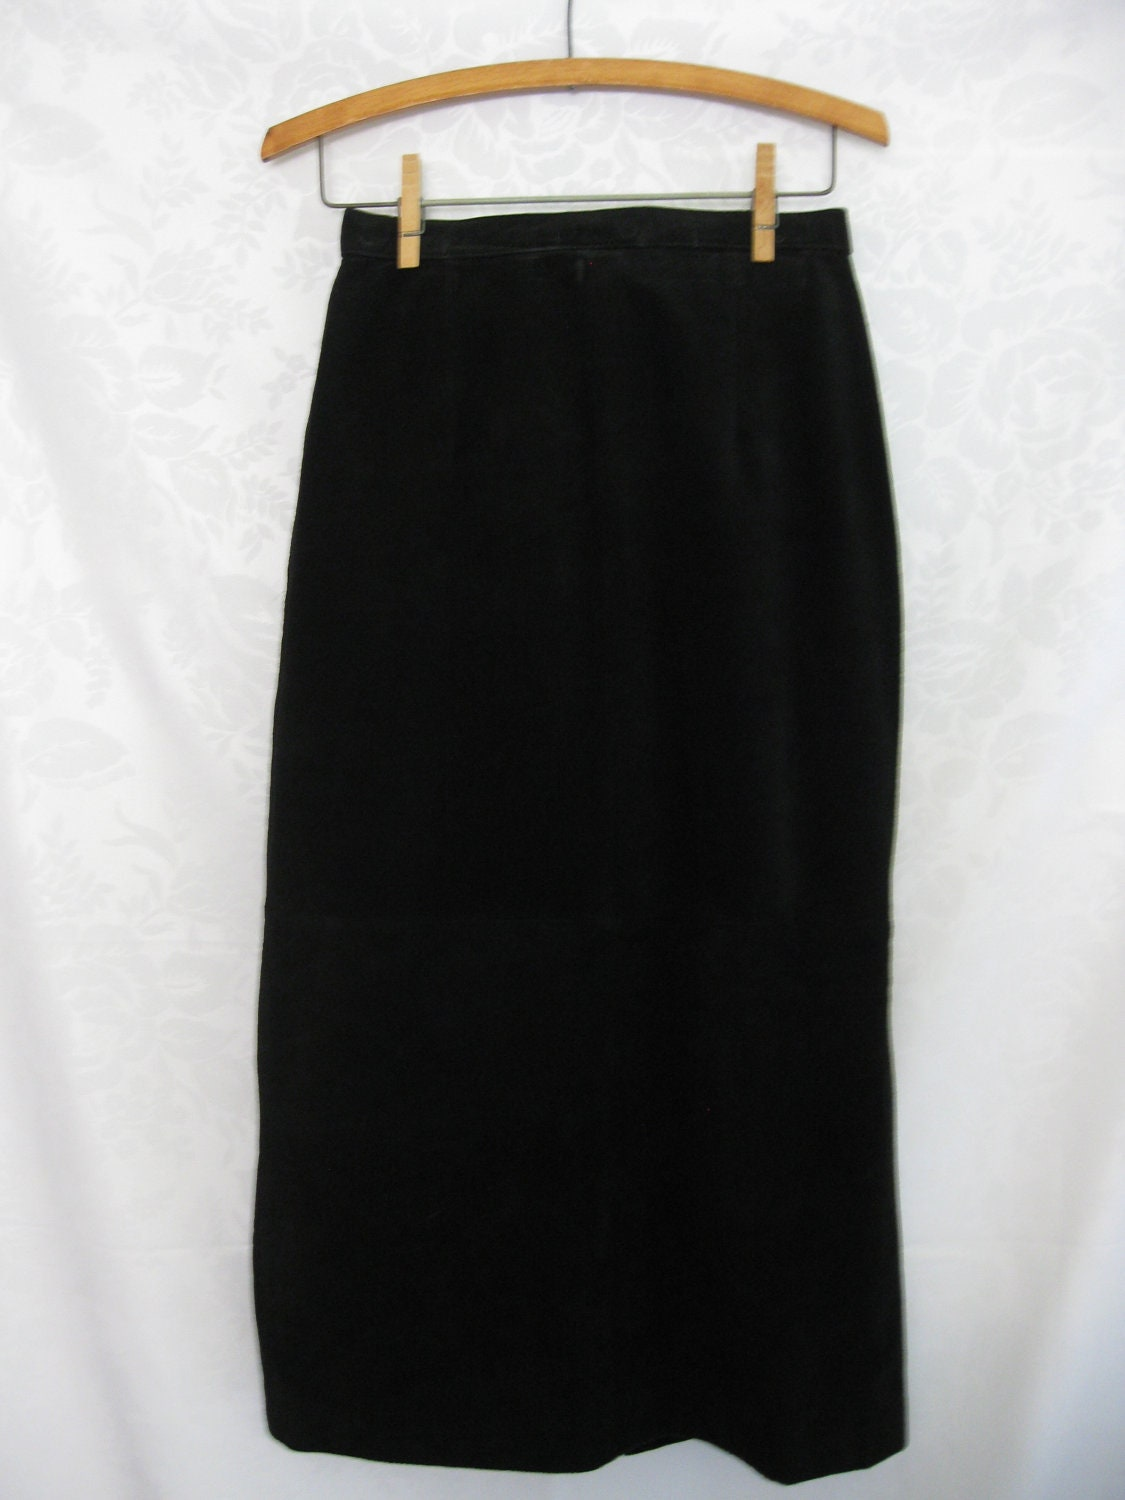 Find a great selection of women's skirts at imaginary-7mbh1j.cf Shop for mini, maxi, pencil, high waisted, denim, and more from top brands like Topshop, Free people, Caslon, Levi's, Vince and more. Free shipping and returns.